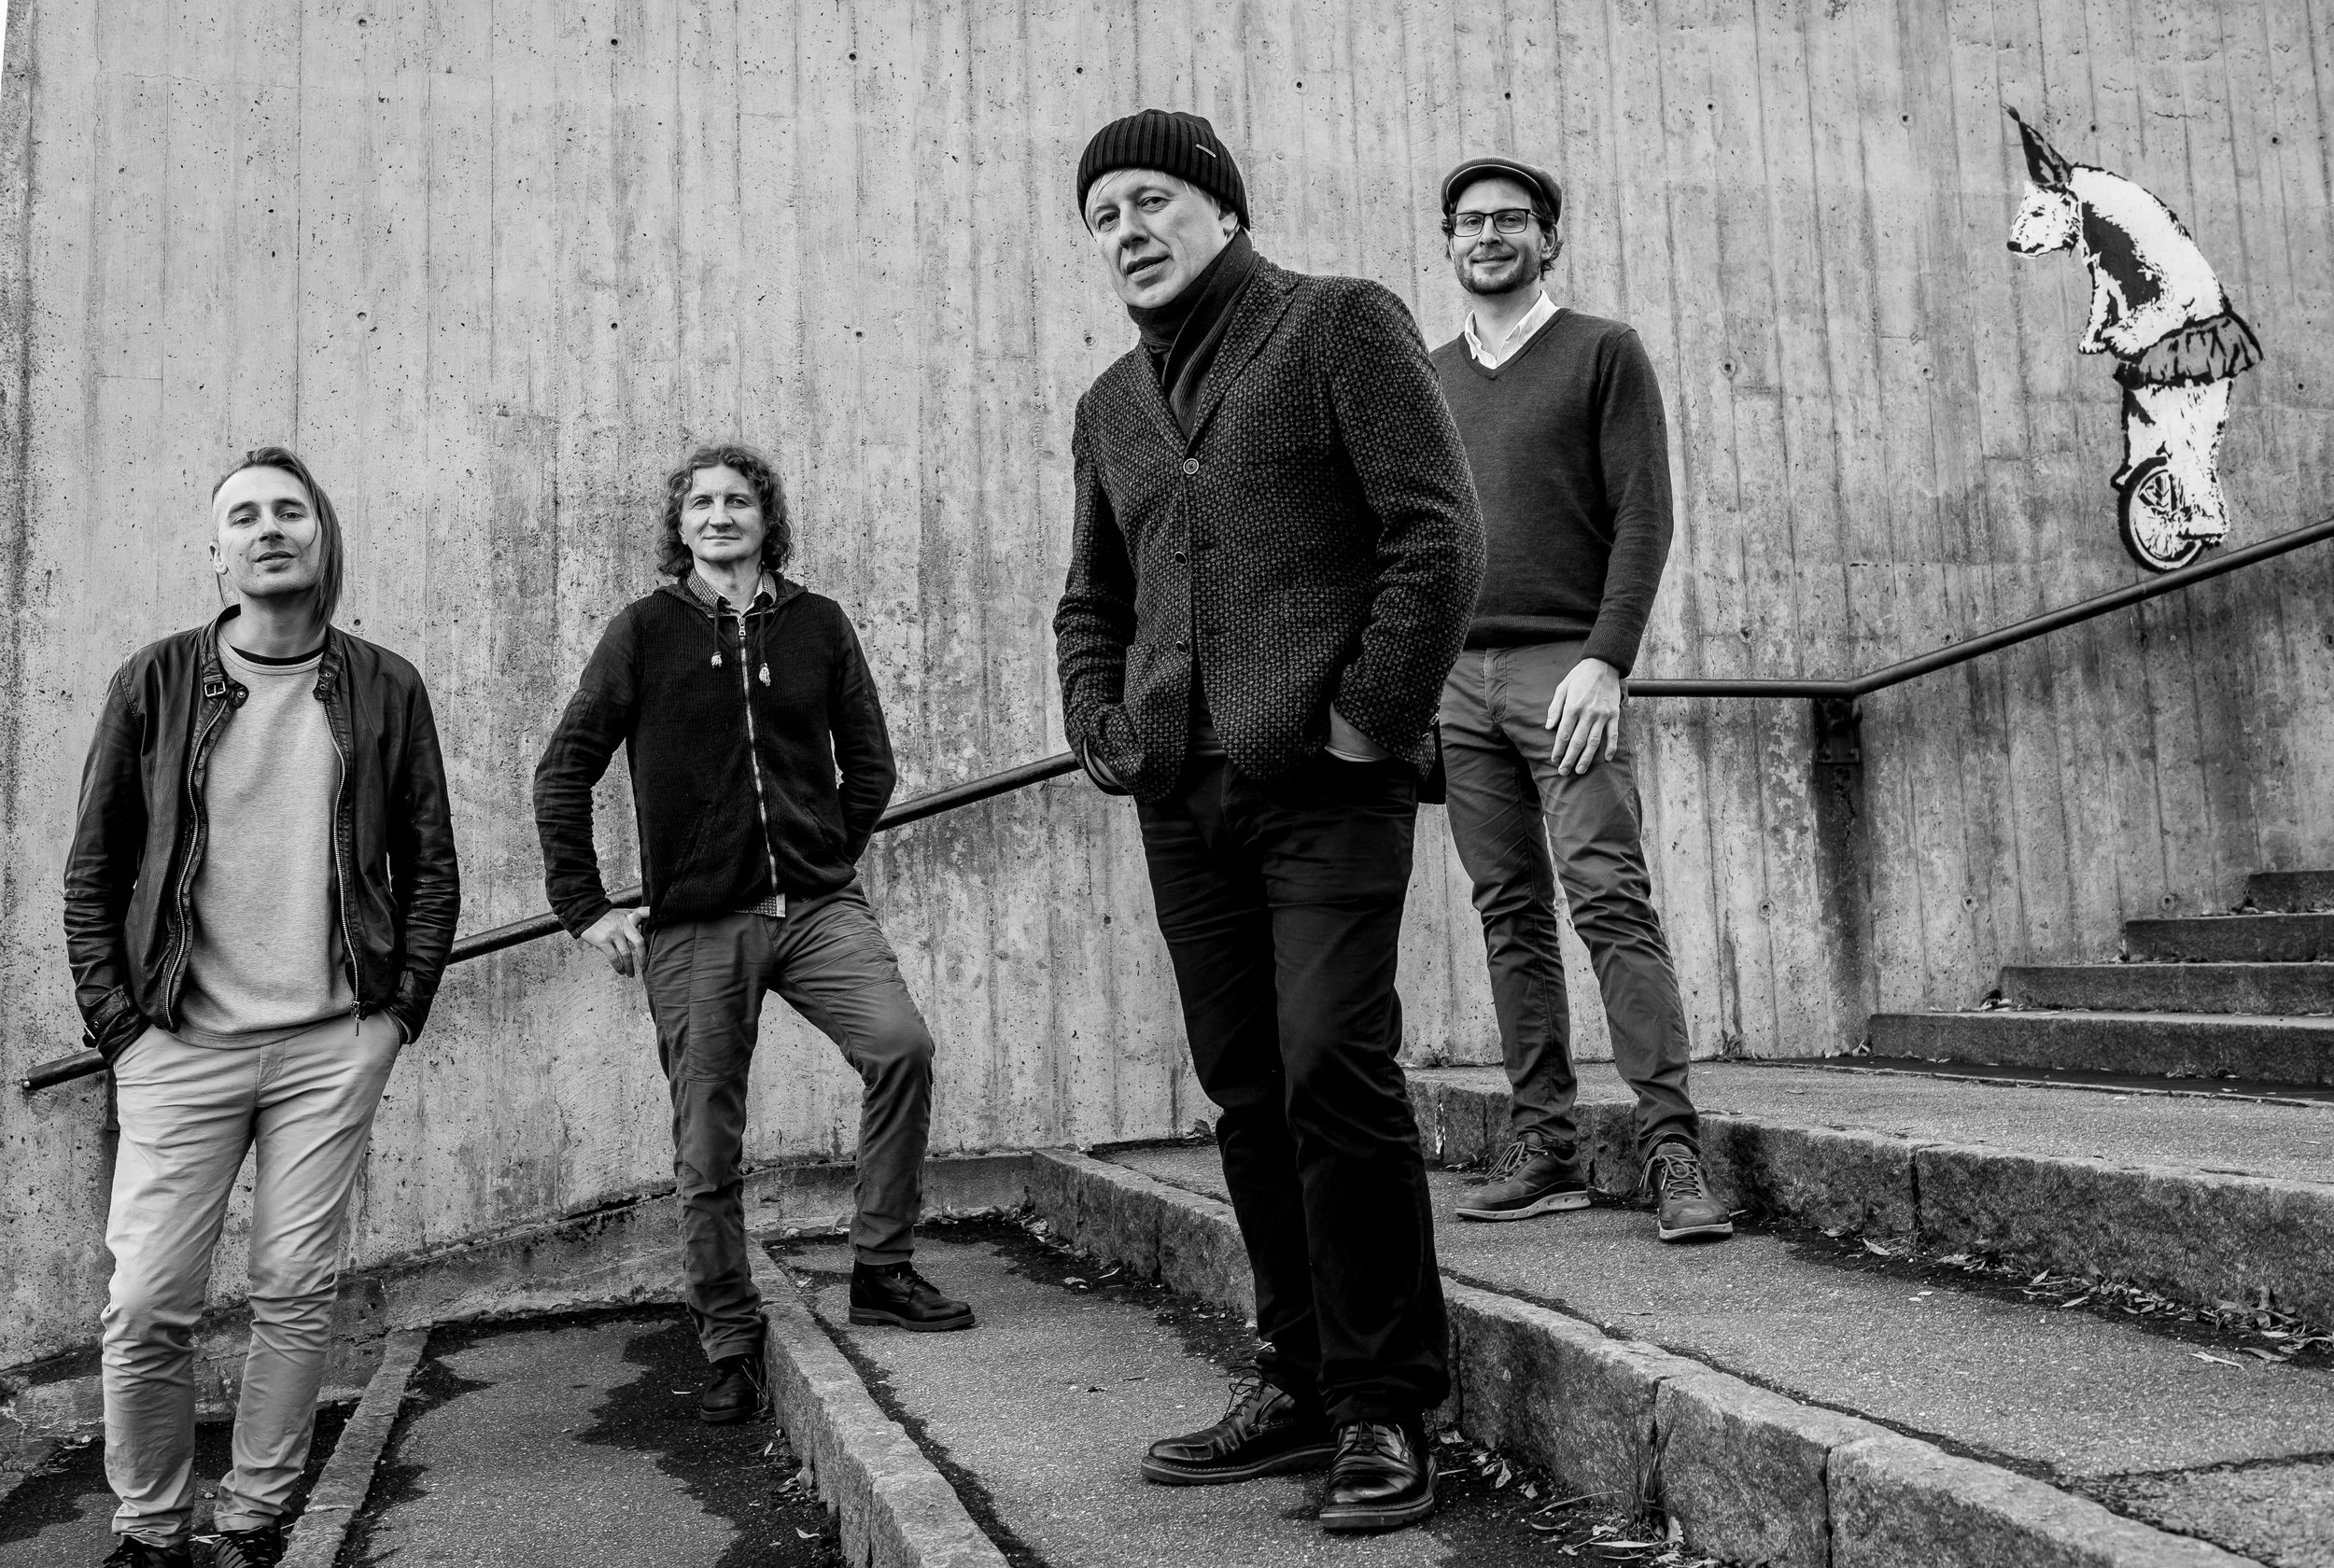 Treskatresk - jazzTreskatresk is an ambitious jazz project, where two of the most sought-after jazz musicians in Russia appear together with two young jazz musicians from Northern Norway. The music puts the well known